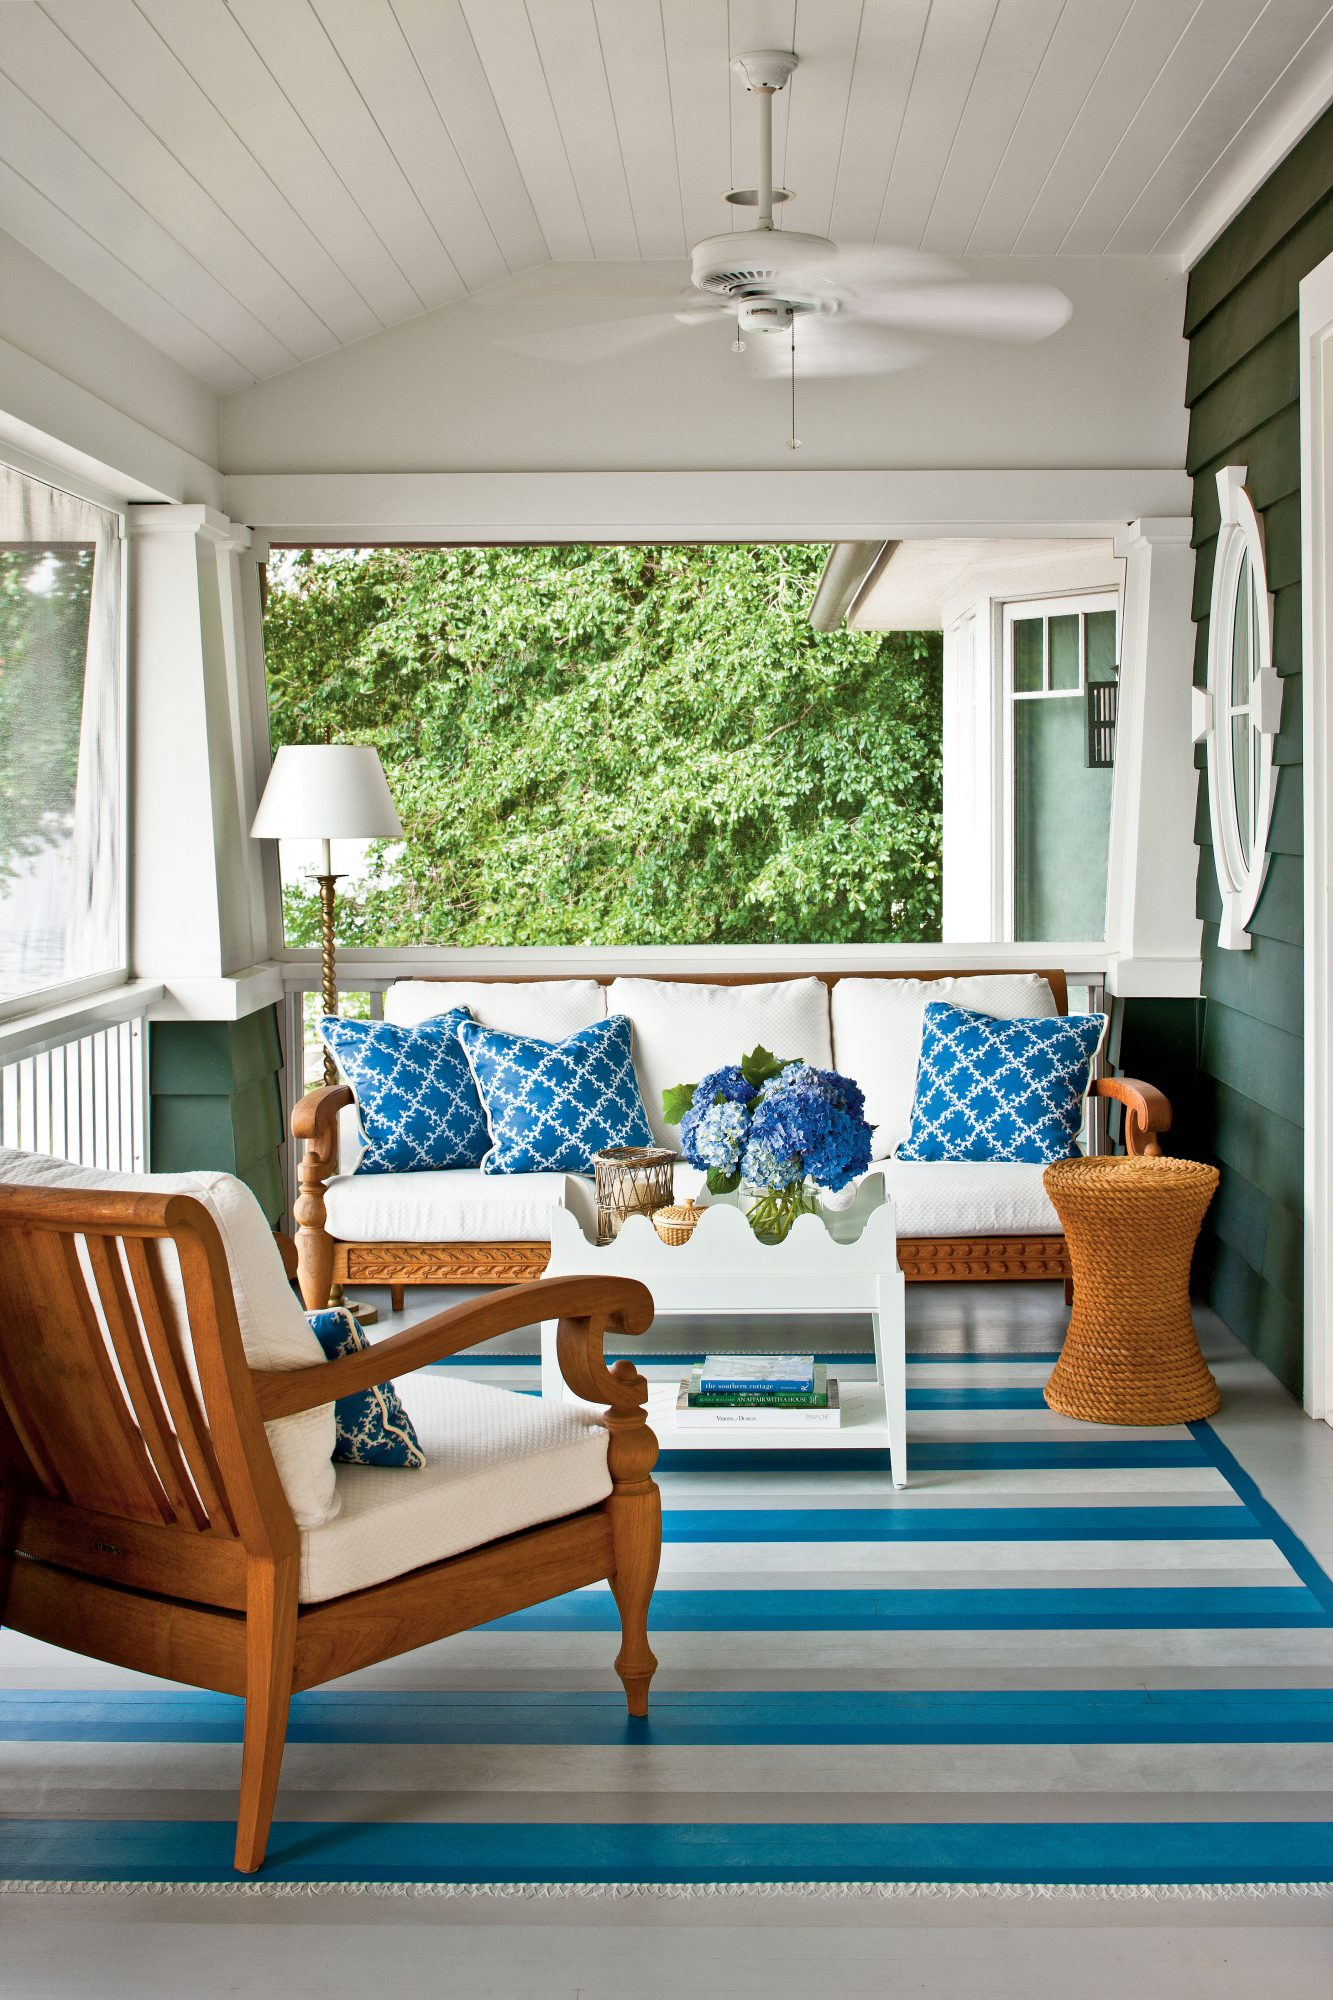 Outdoor Decorating Trends That Will Be In For Summer - Summer furniture